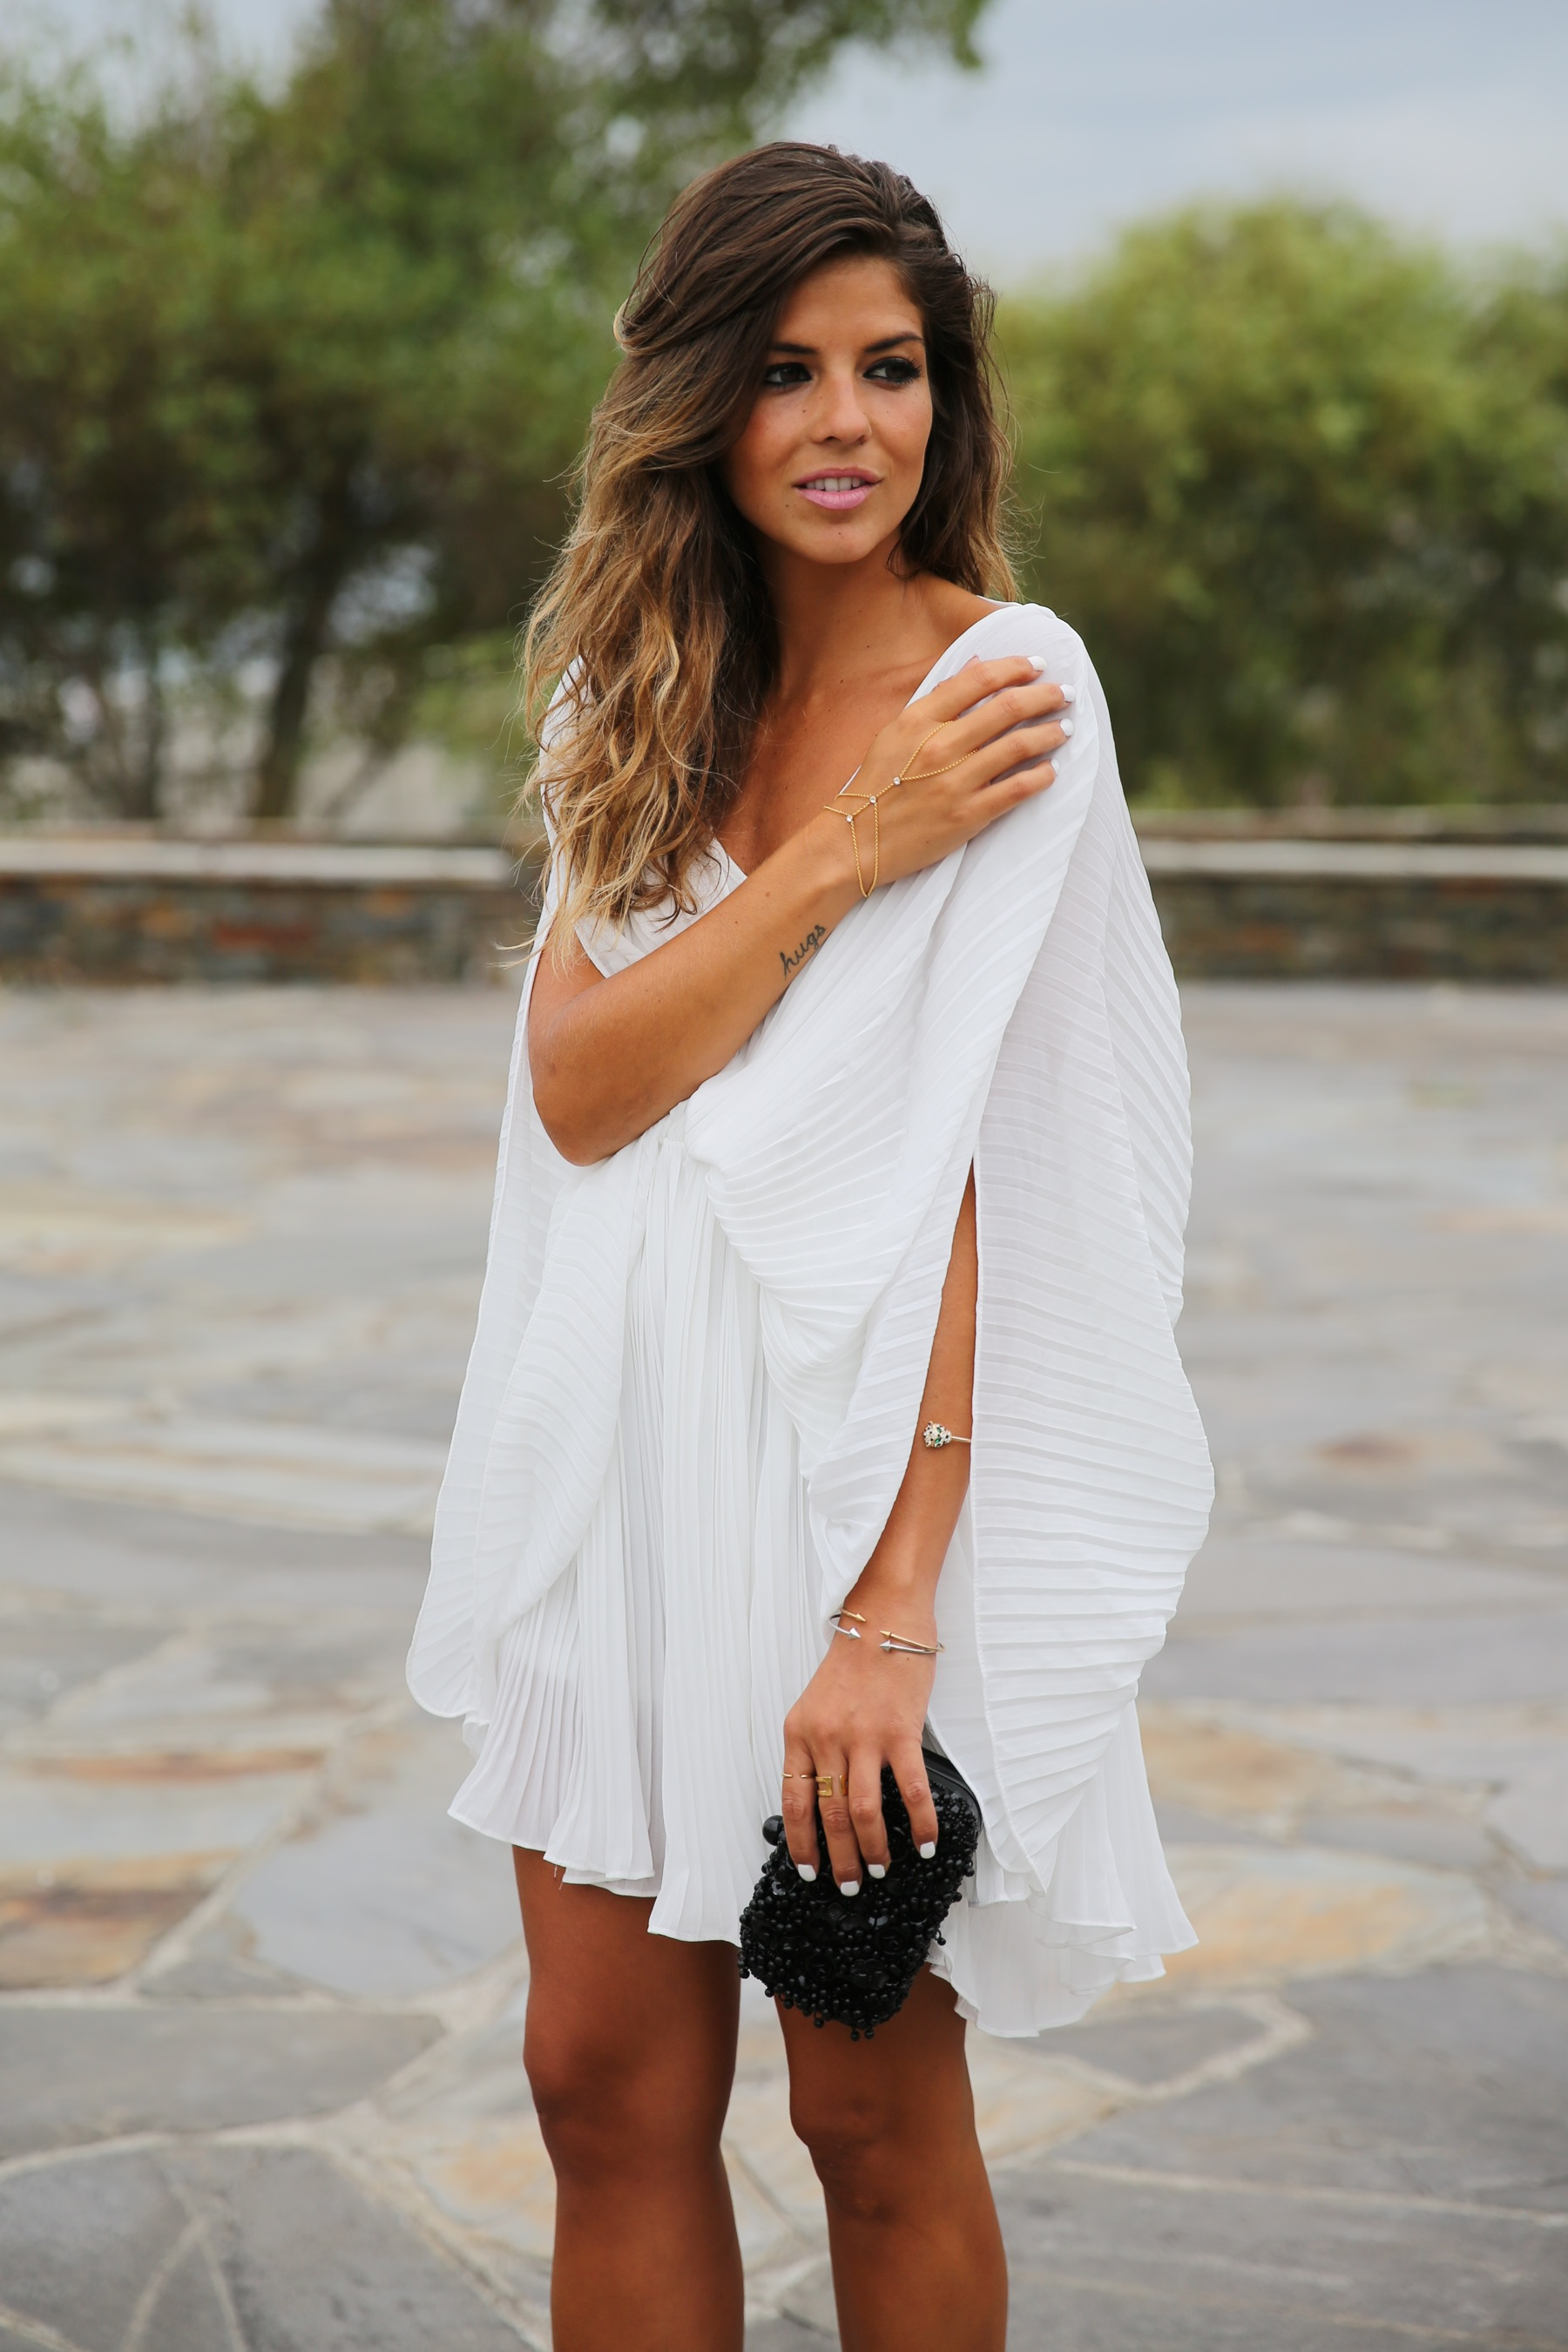 trendy_taste-look-outfit-street_style-fashion_spain-moda_españa-blog-blogger-vestido_blanco-white_dress-müic-jewels-joyas-leo_sandals-sandalias_leopardo-clutch_pedreria-7